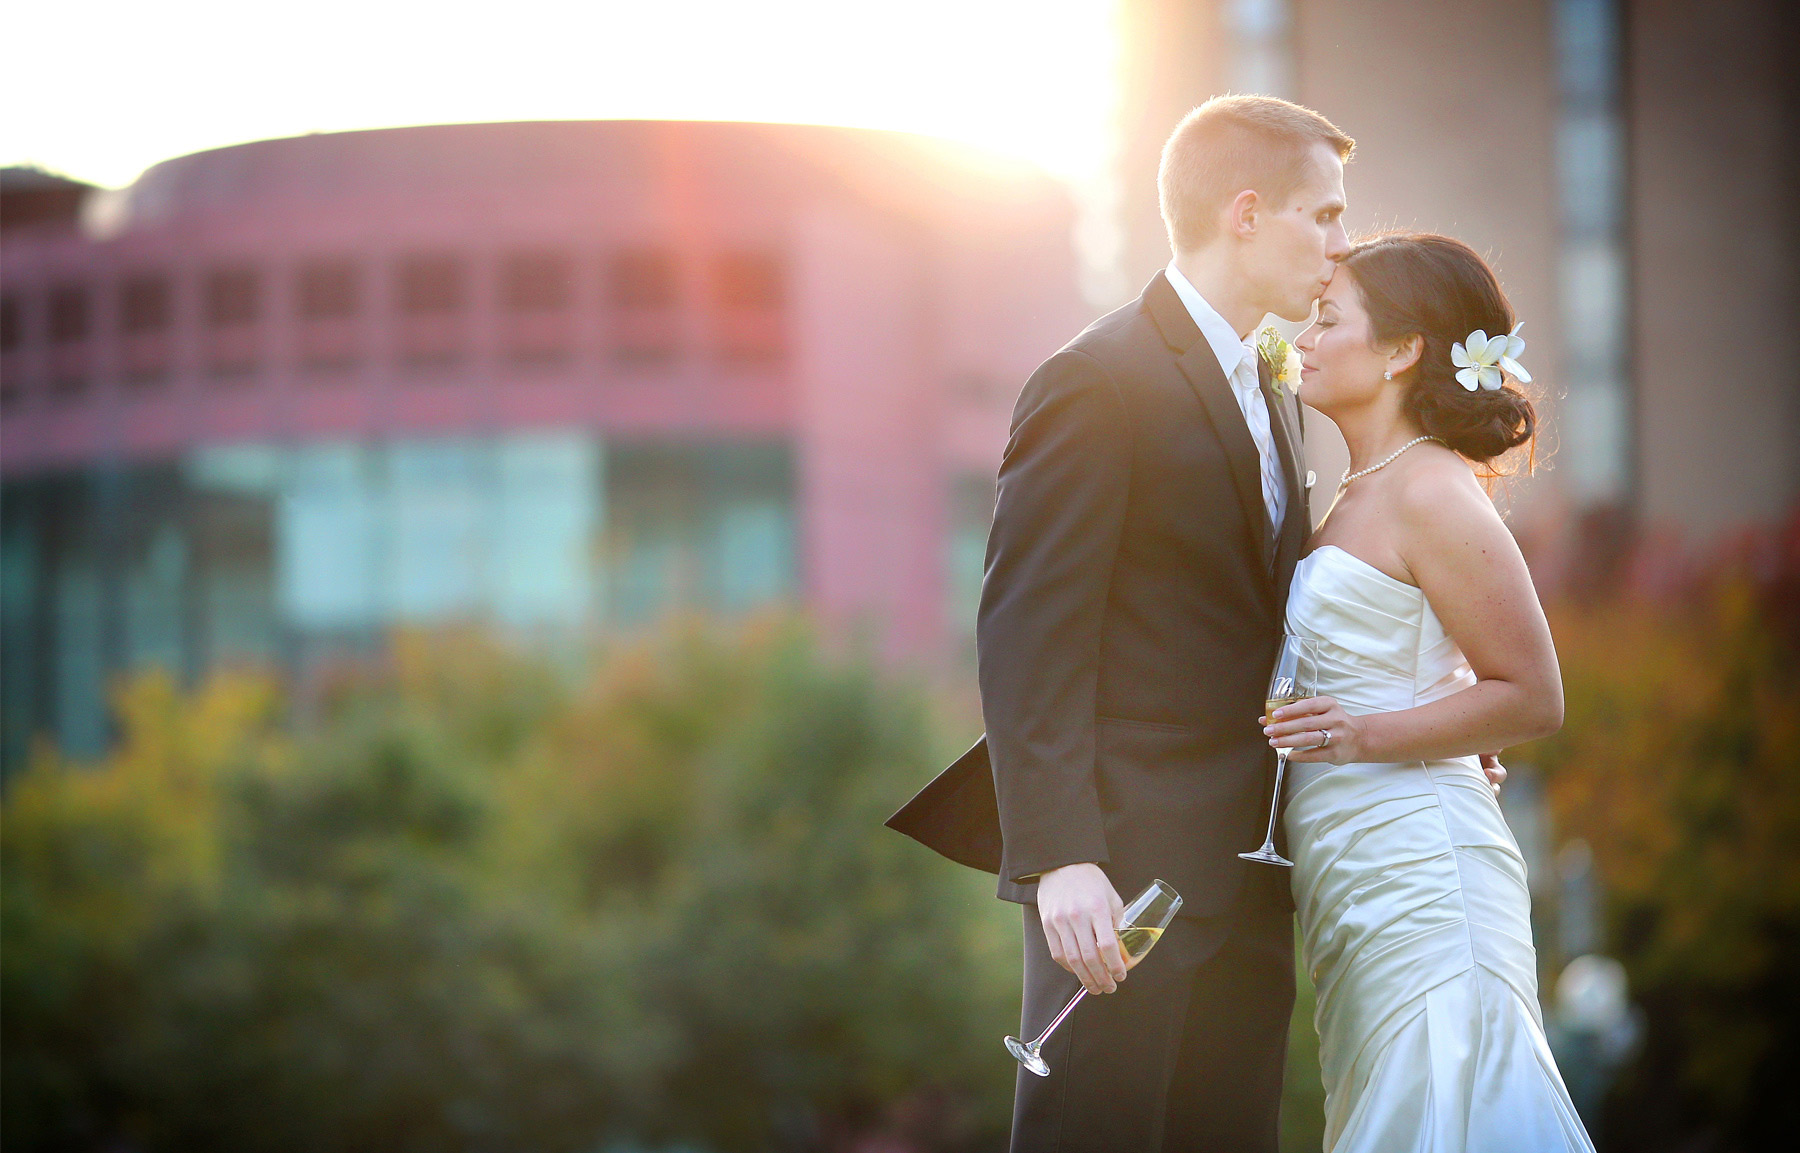 19-Minneapolis-Minnesota-Wedding-Photographer-by-Andrew-Vick-Photography-Fall-Autumn-Convention-Center-Bride-Groom-Champagne-Kiss-Amanda-and-Cary.jpg